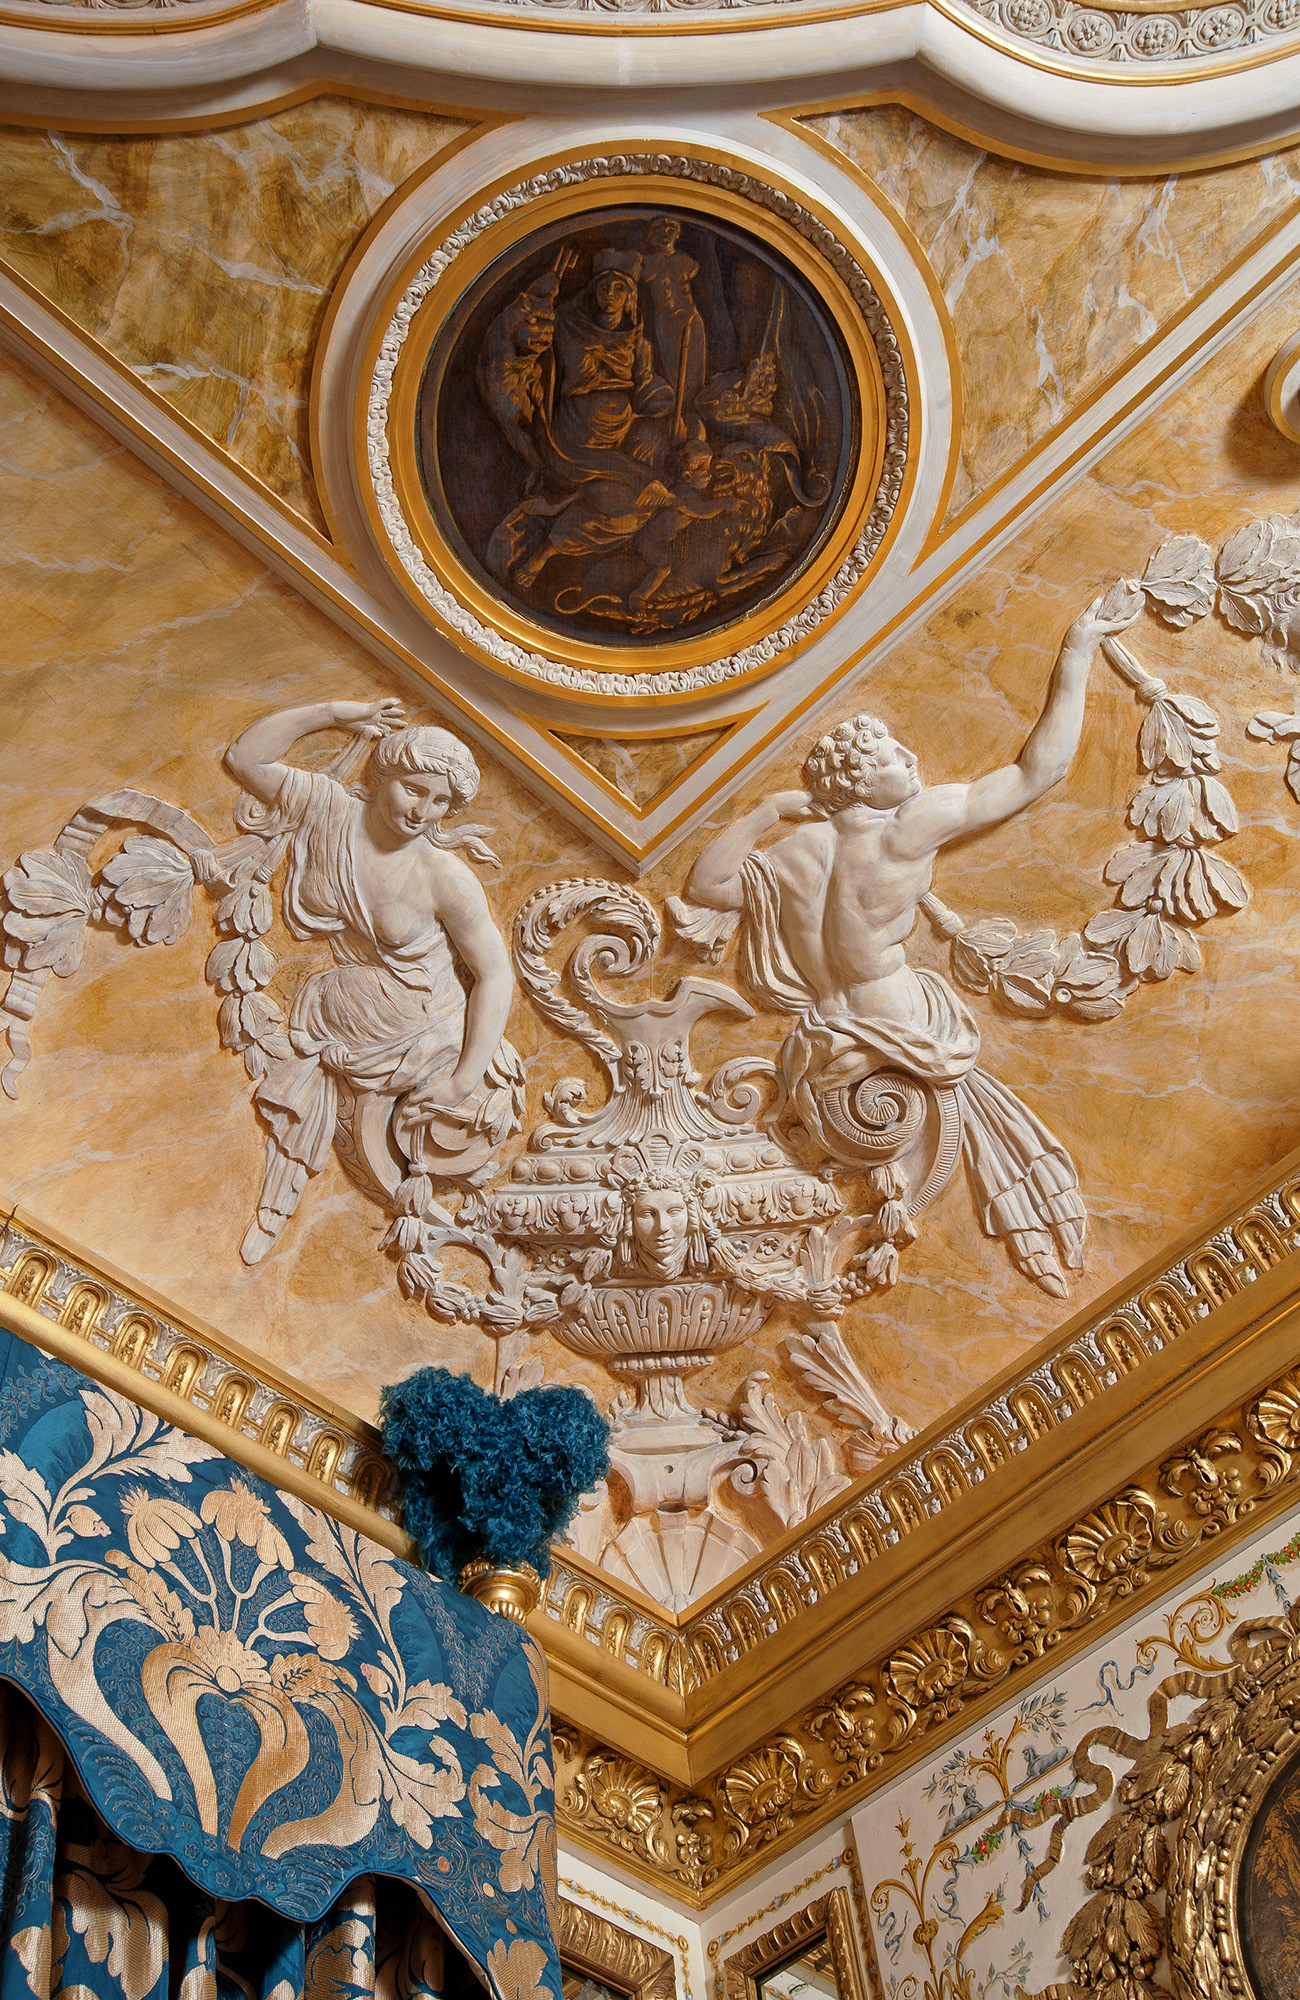 Cornice and ceiling with sculpted scenes copied from Hôtel de Vigny, Paris. Hand painted medallion